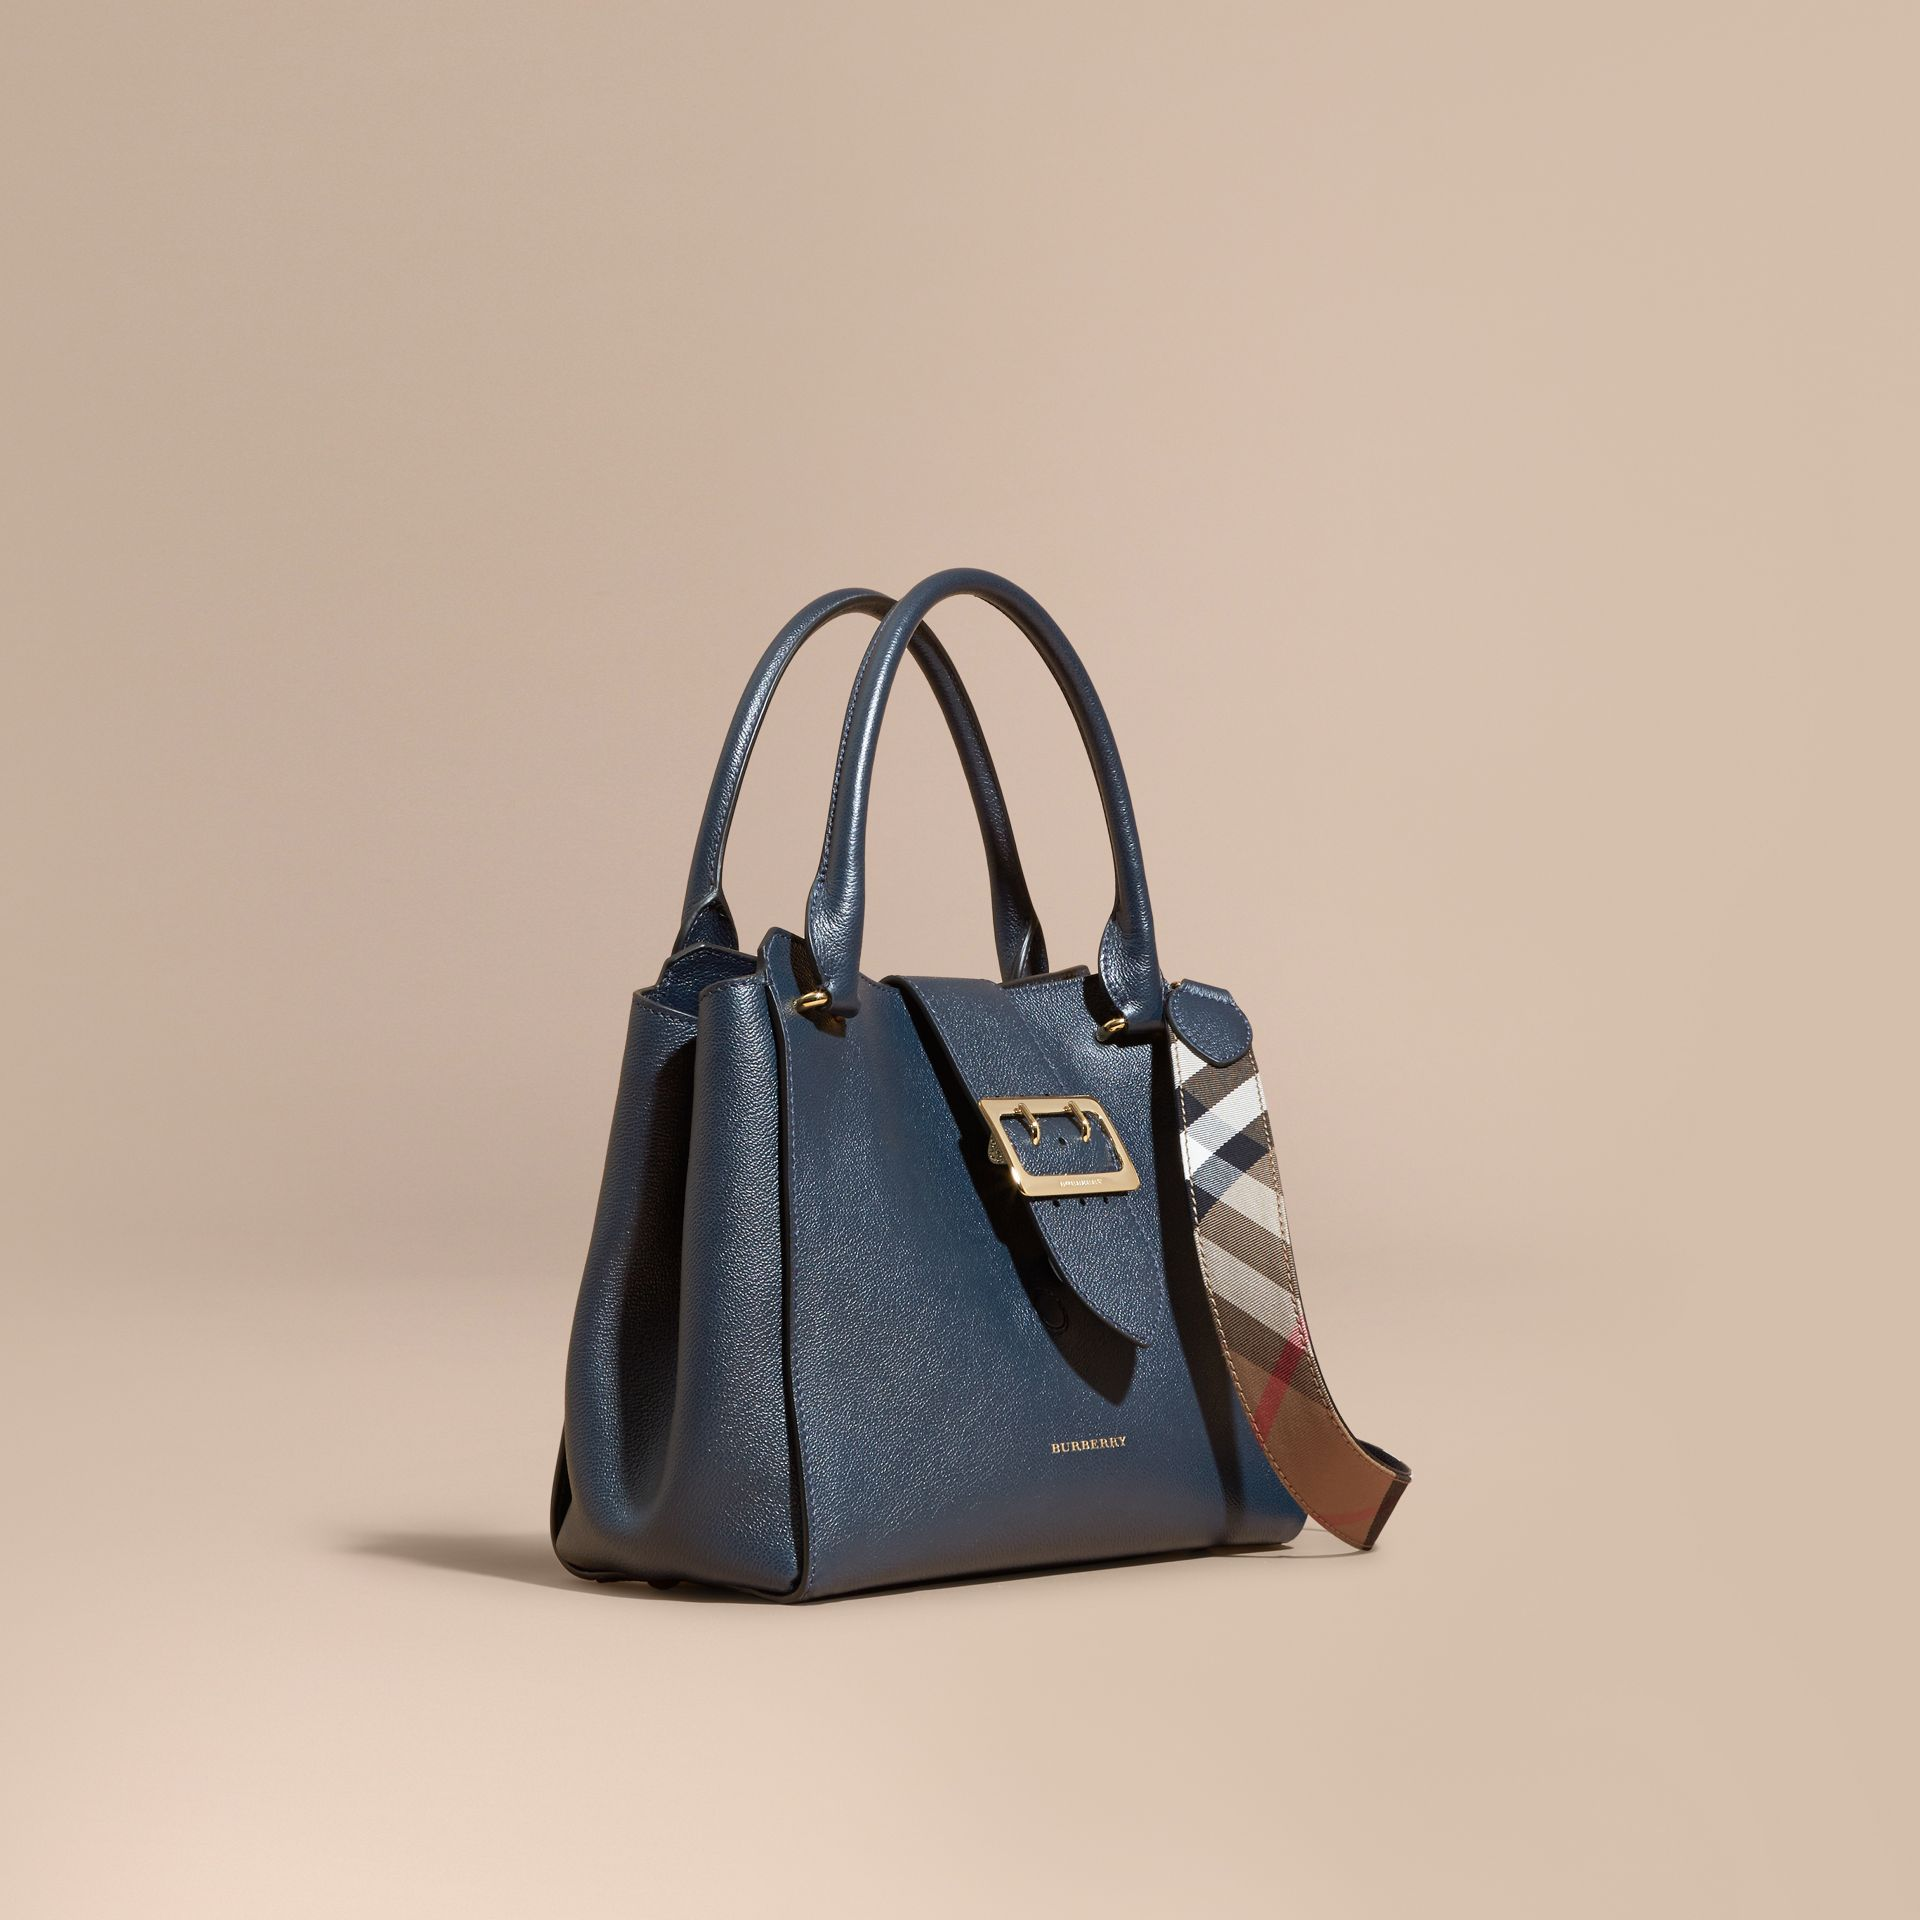 Blue carbon The Medium Buckle Tote in Grainy Leather Blue Carbon - gallery image 1